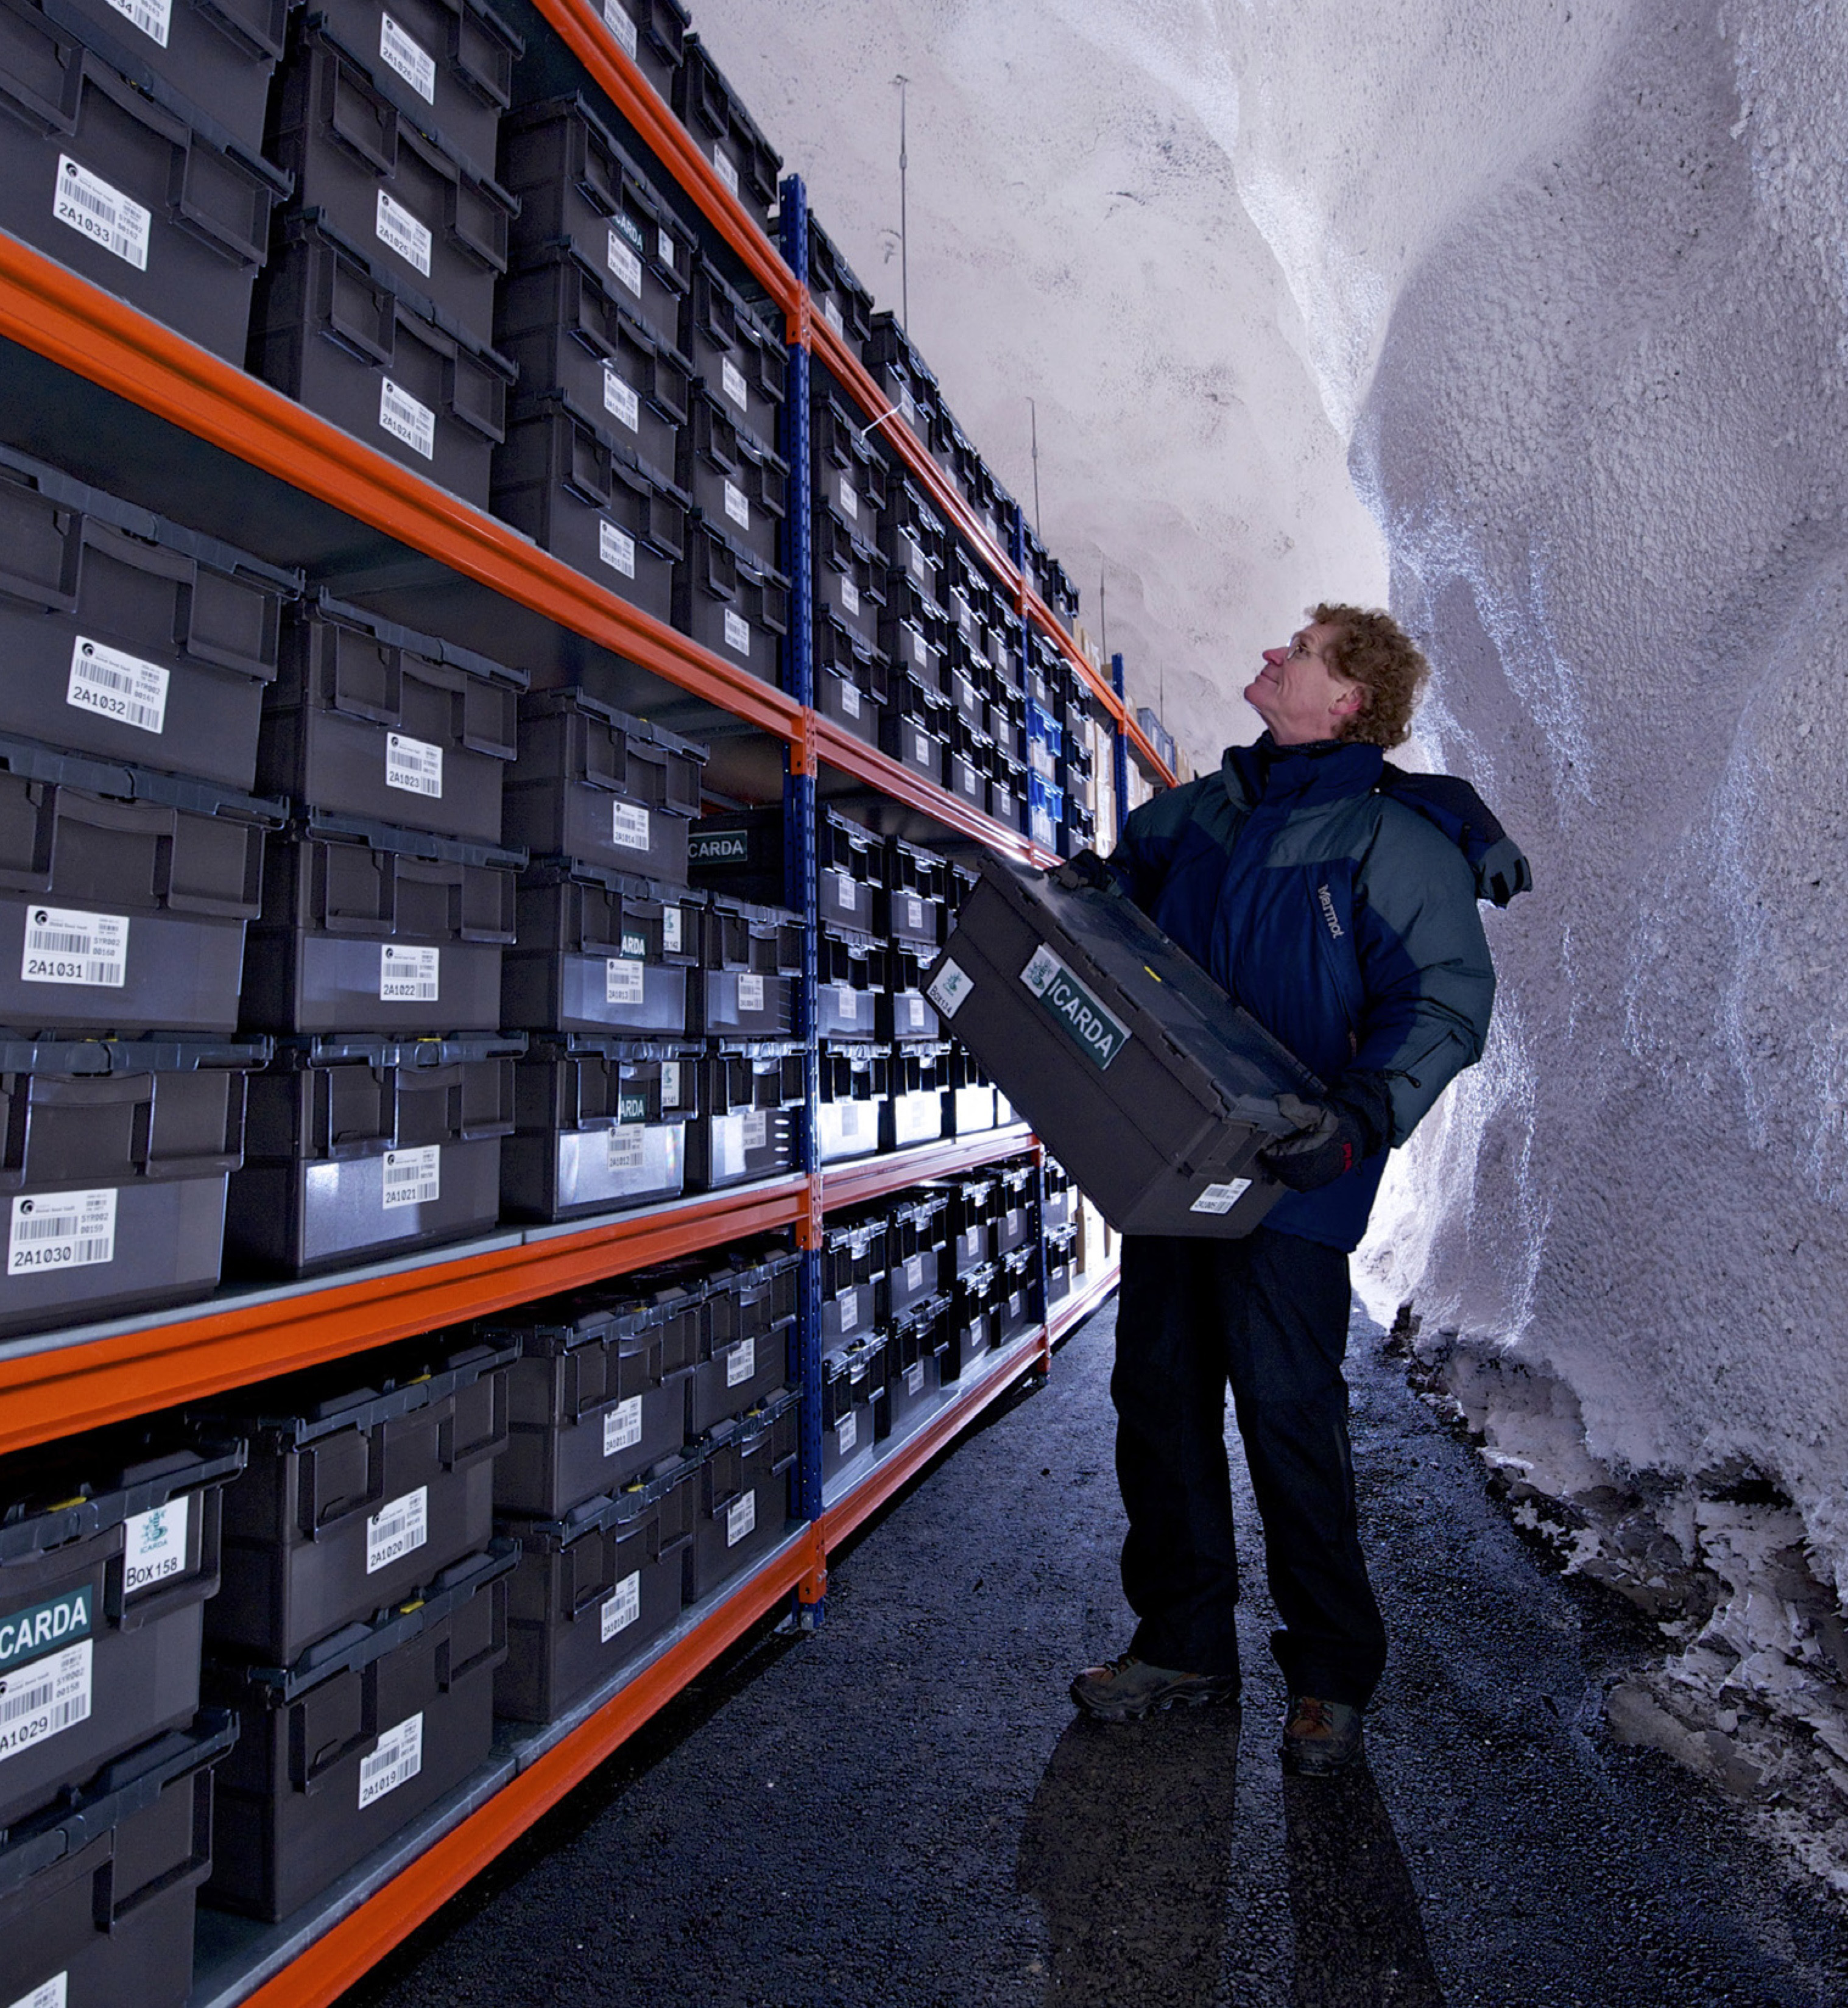 Cary Fowler in the main seed vault. Its natural year-round temperature is minus-5 degrees Celsius (23 degrees Fahrenheit), but the air is further cooled to the optimum storage temperature of minus-18 degrees Celsius (zero degrees F). (Jim Richardson / Prospecta Press)